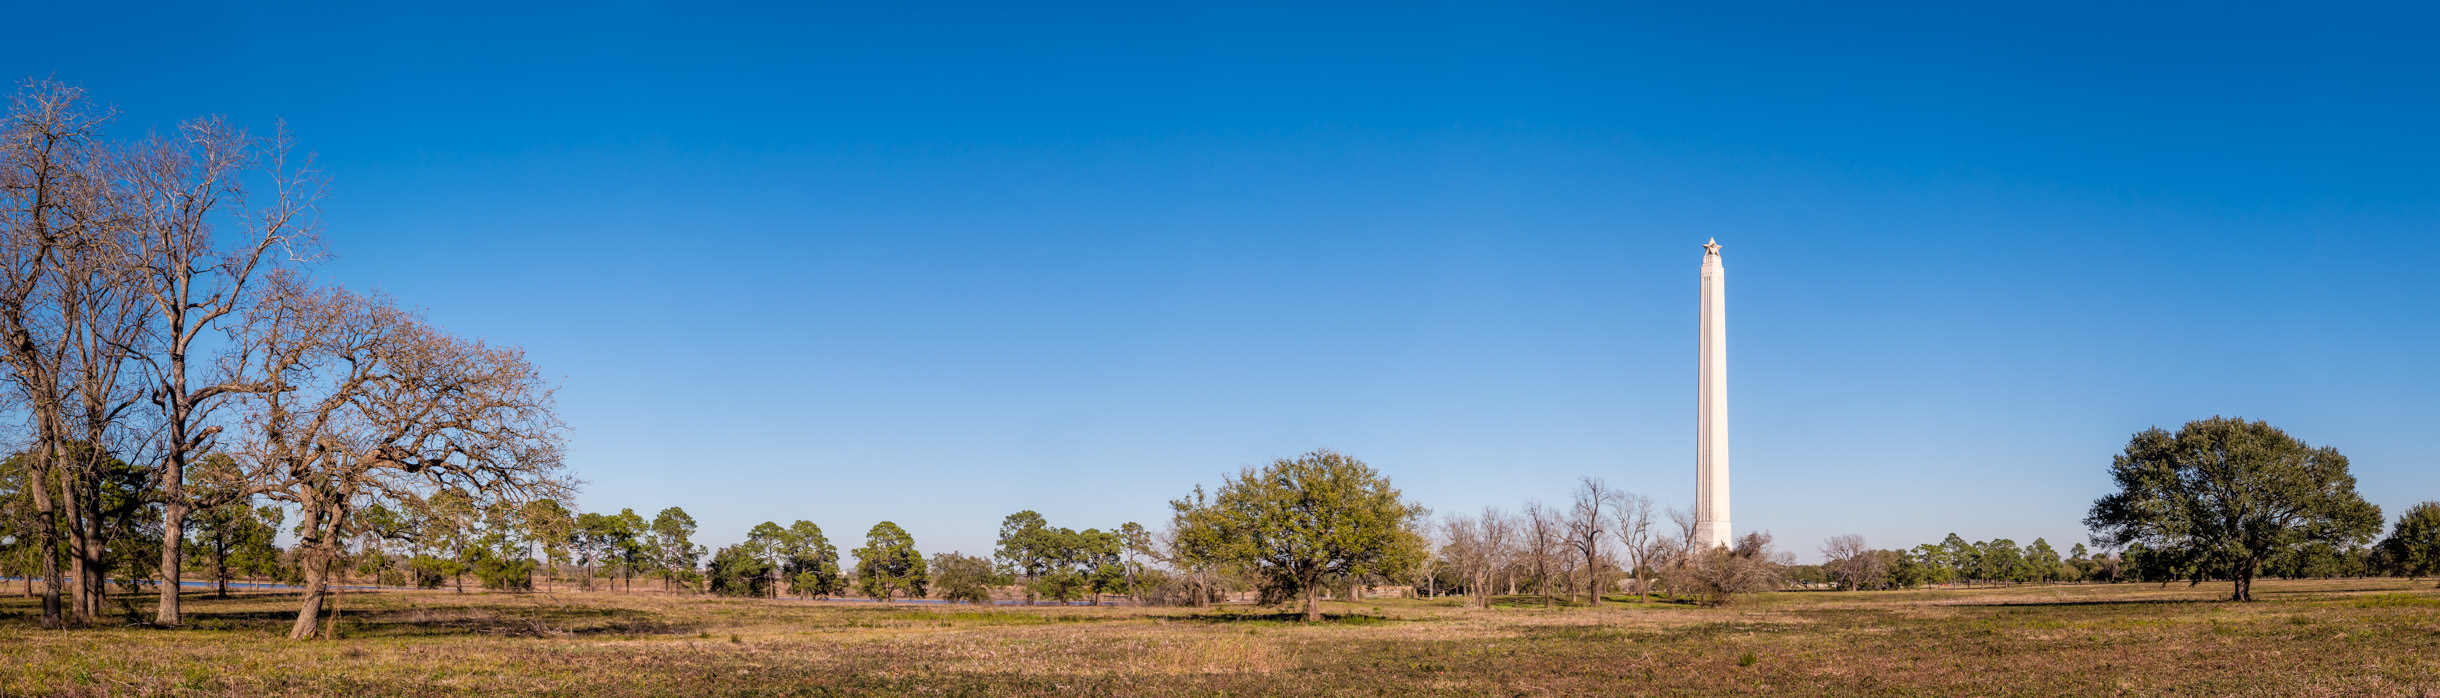 "A panoramic view of the San Jacinto Battleground—the site of the decisive battle of the Texas Revolution on April 21, 1836, that ensured Texas' independence from Mexico. The site is marked by the 567-foot-tall San Jacinto Monument, completed in 1939 and topped by a 220-ton, 34-foot ""Lone Star""."